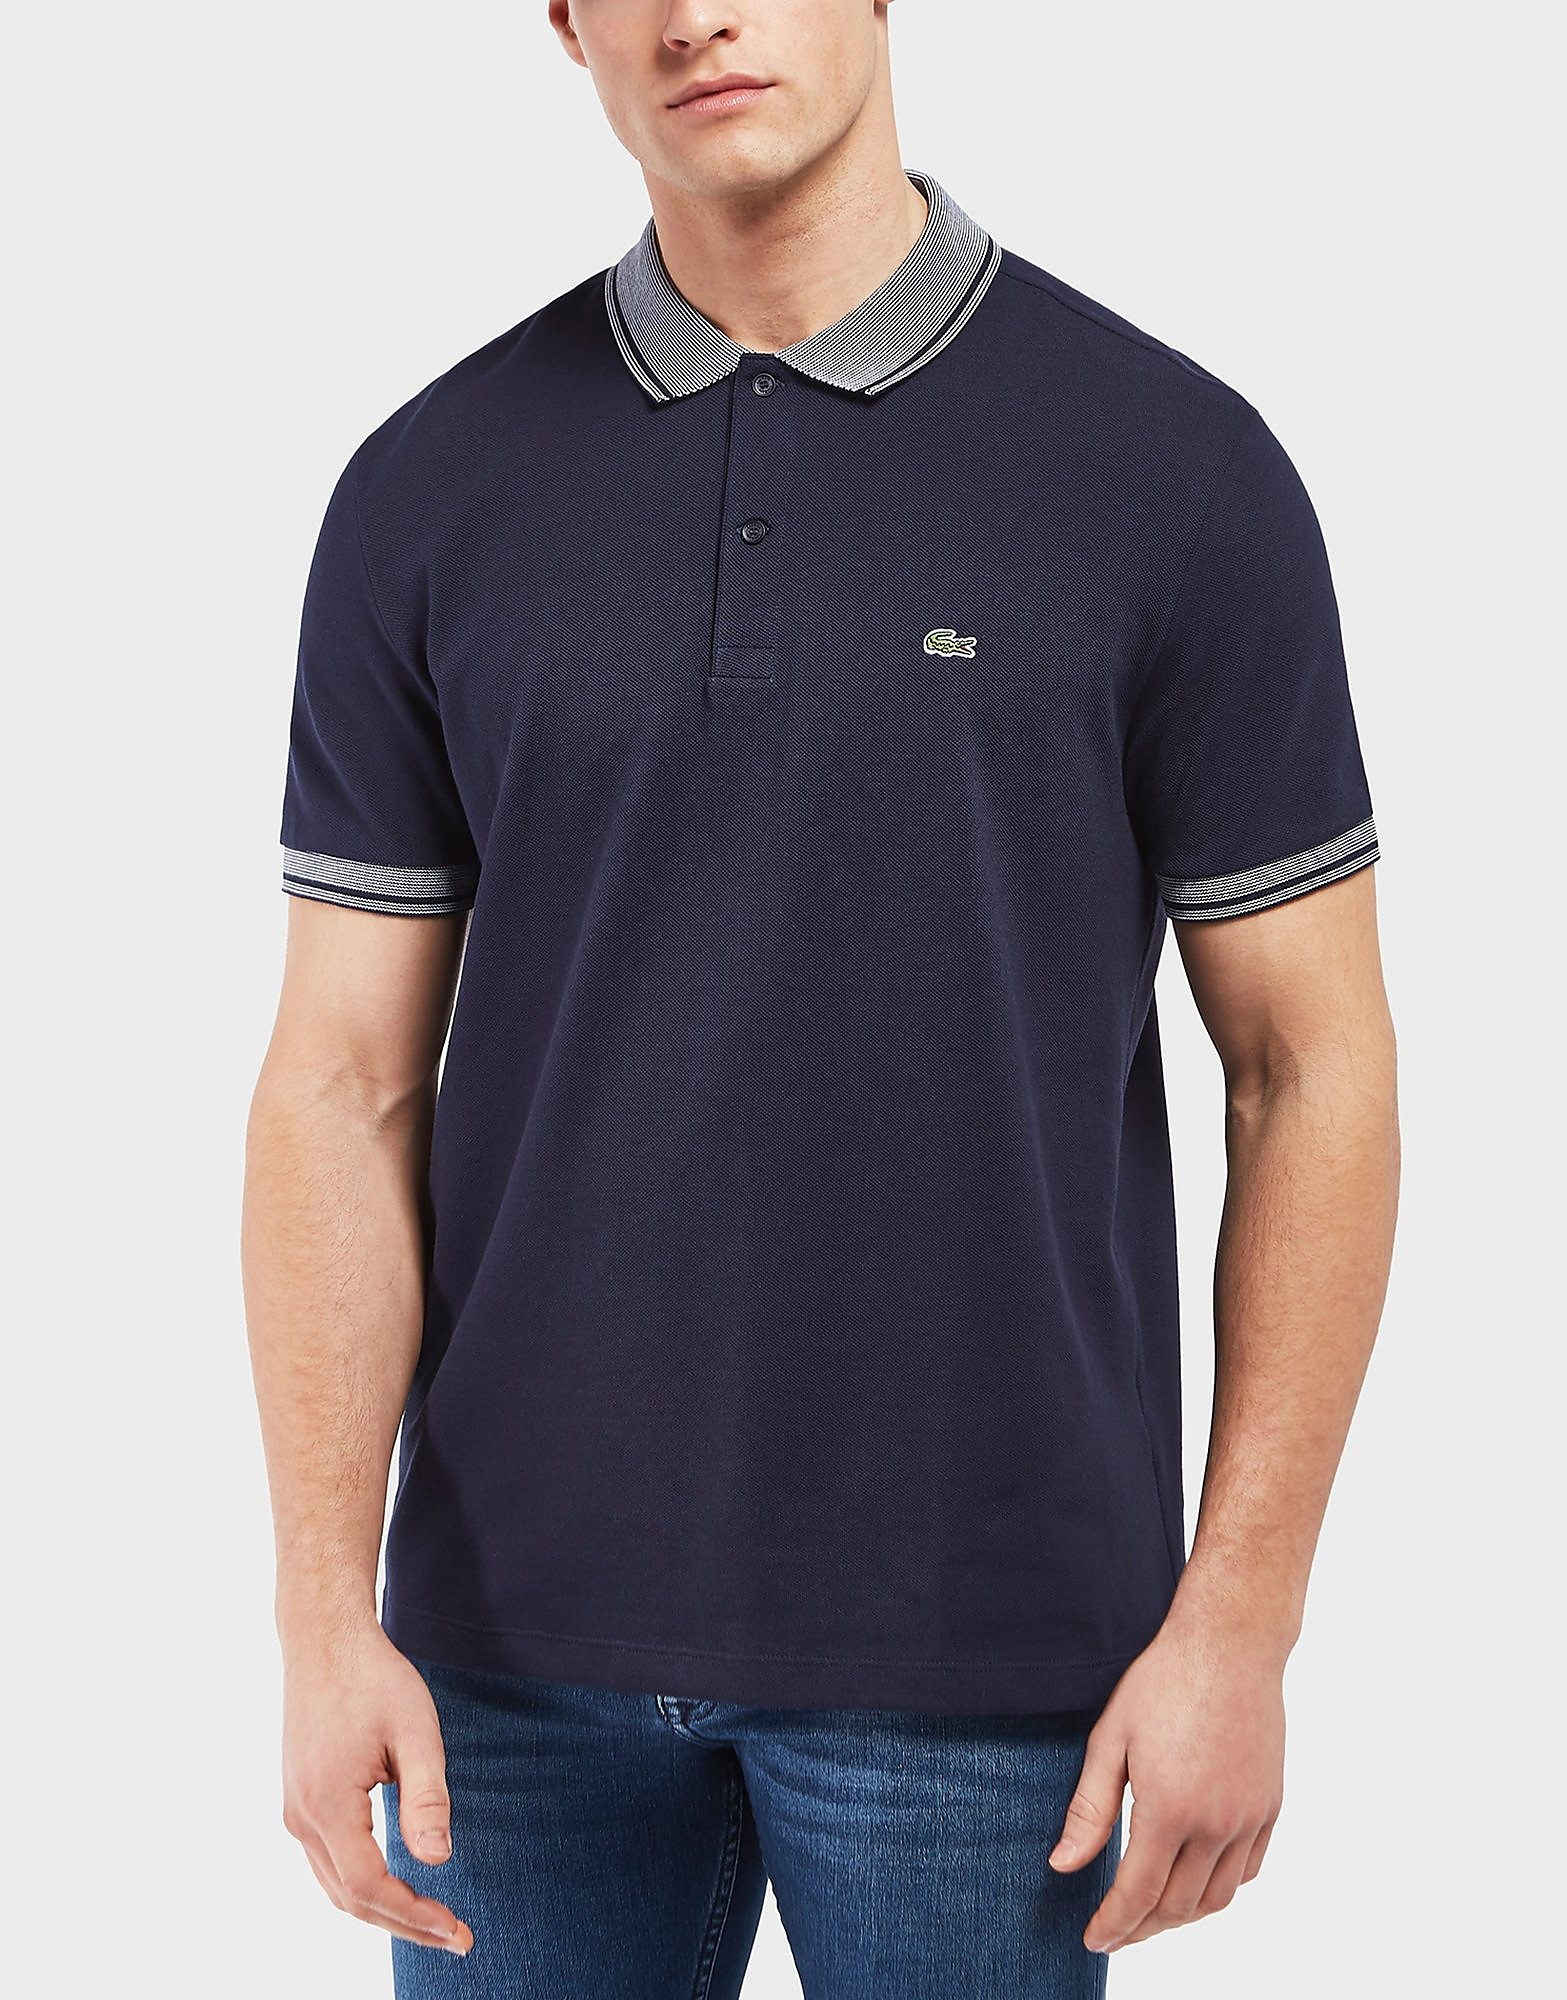 Lacoste Oxford Collar Short Sleeve Polo Shirt